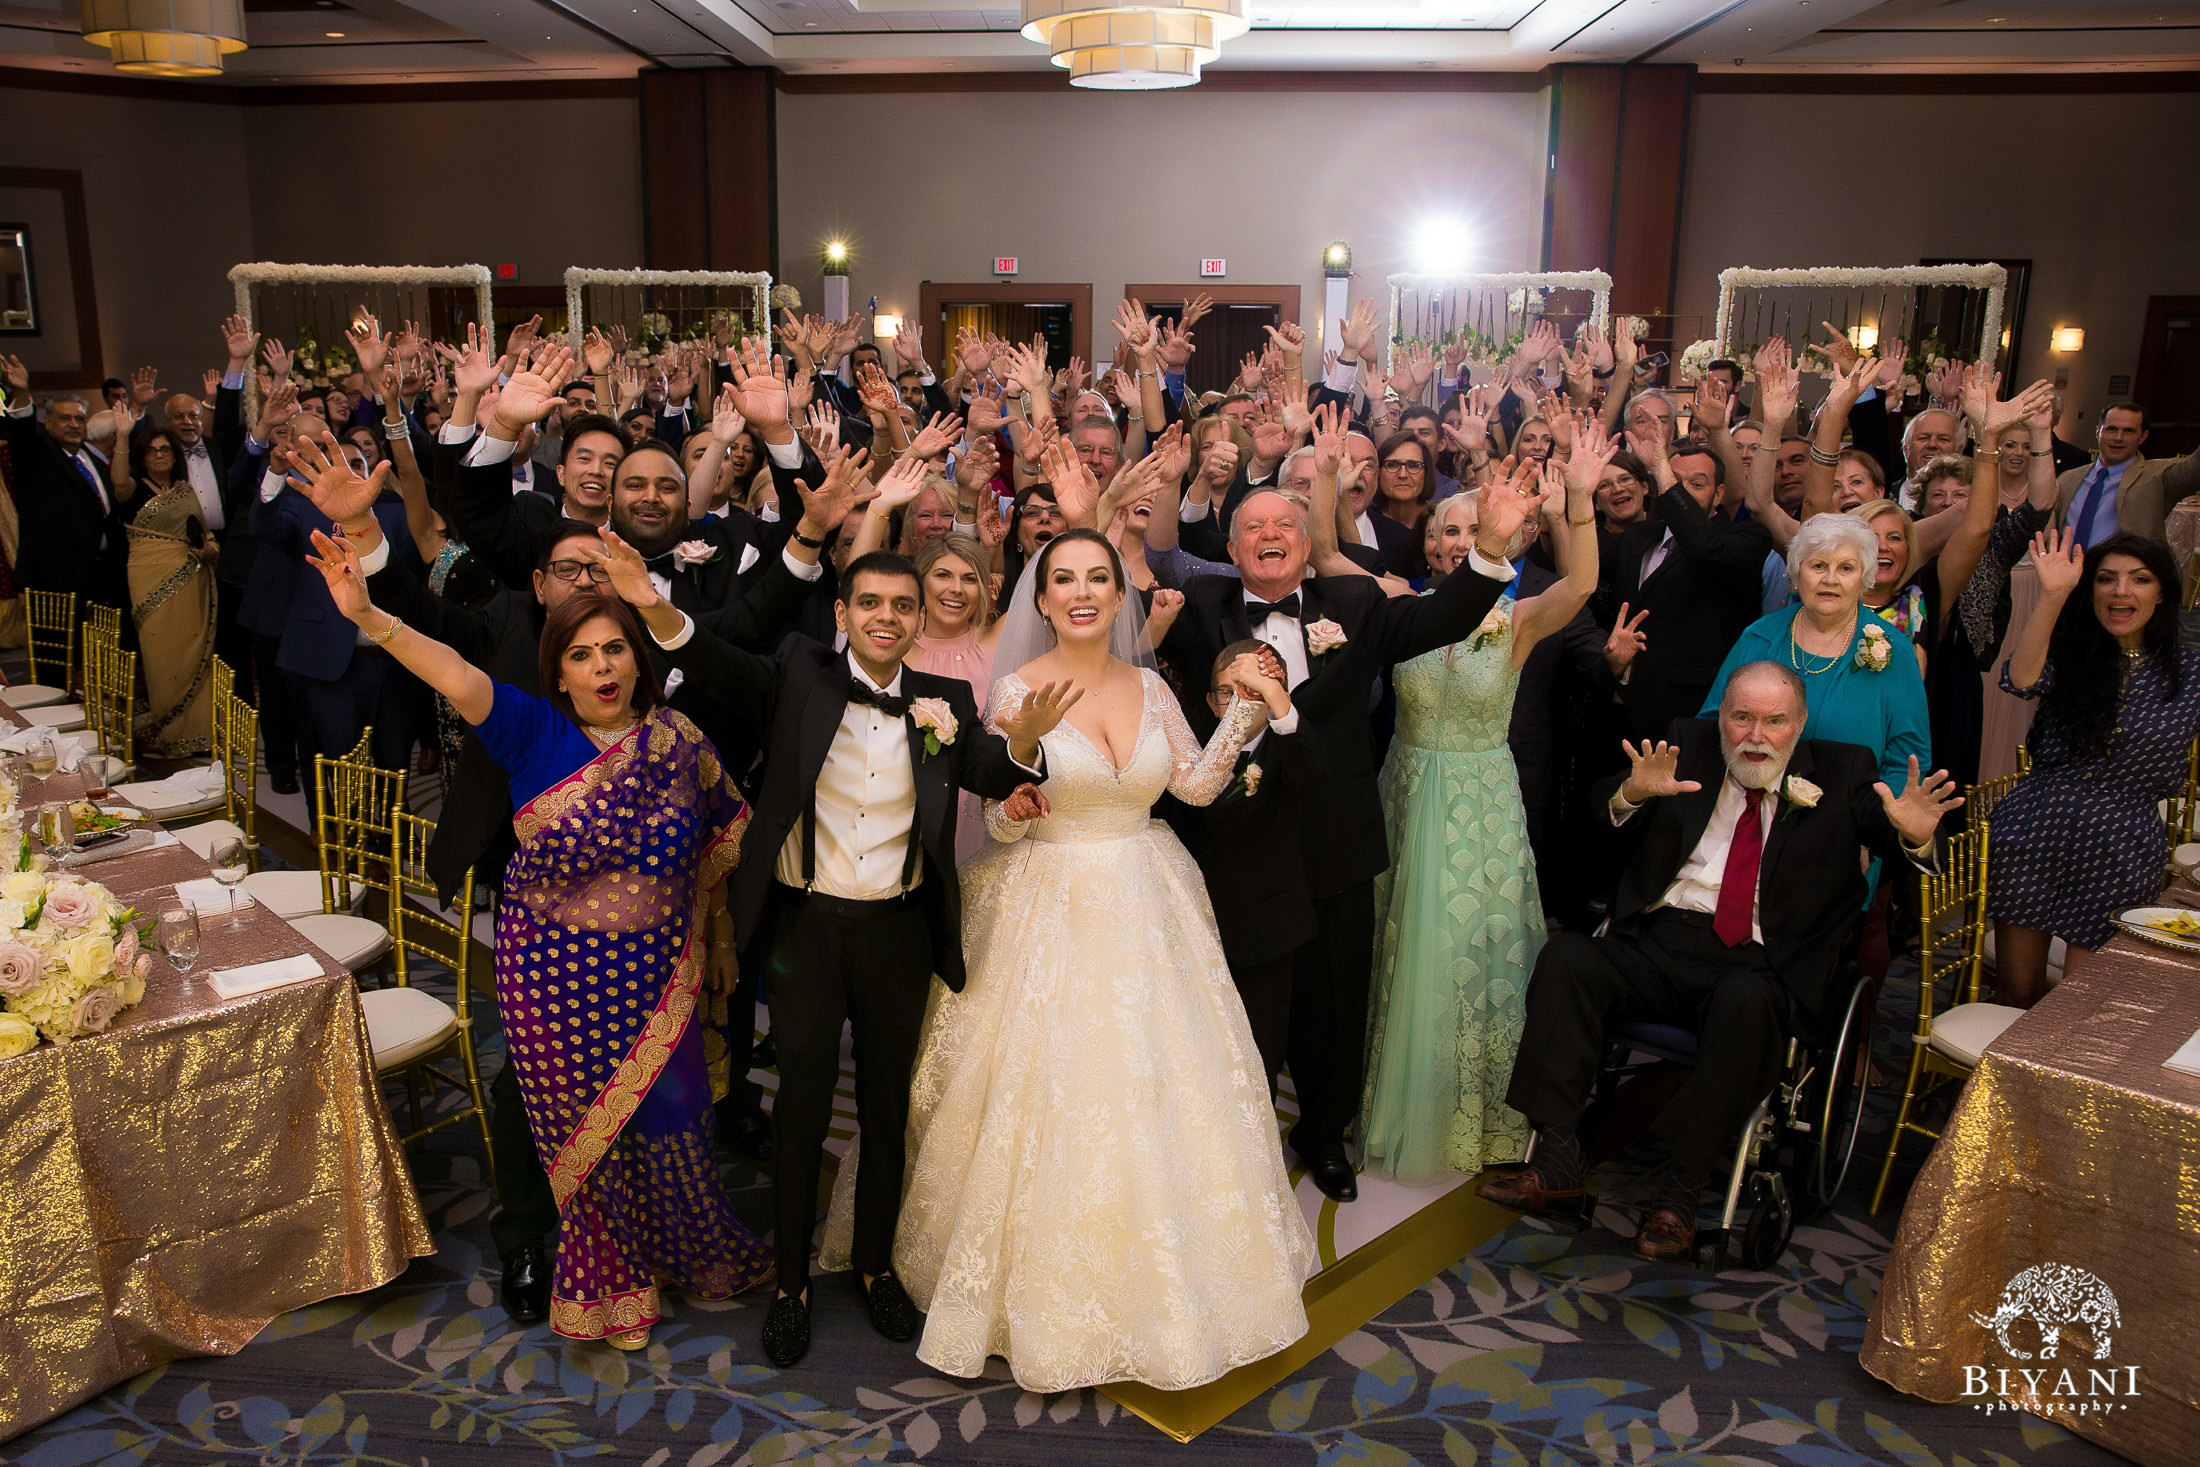 Bride and groom join their families for large family photo